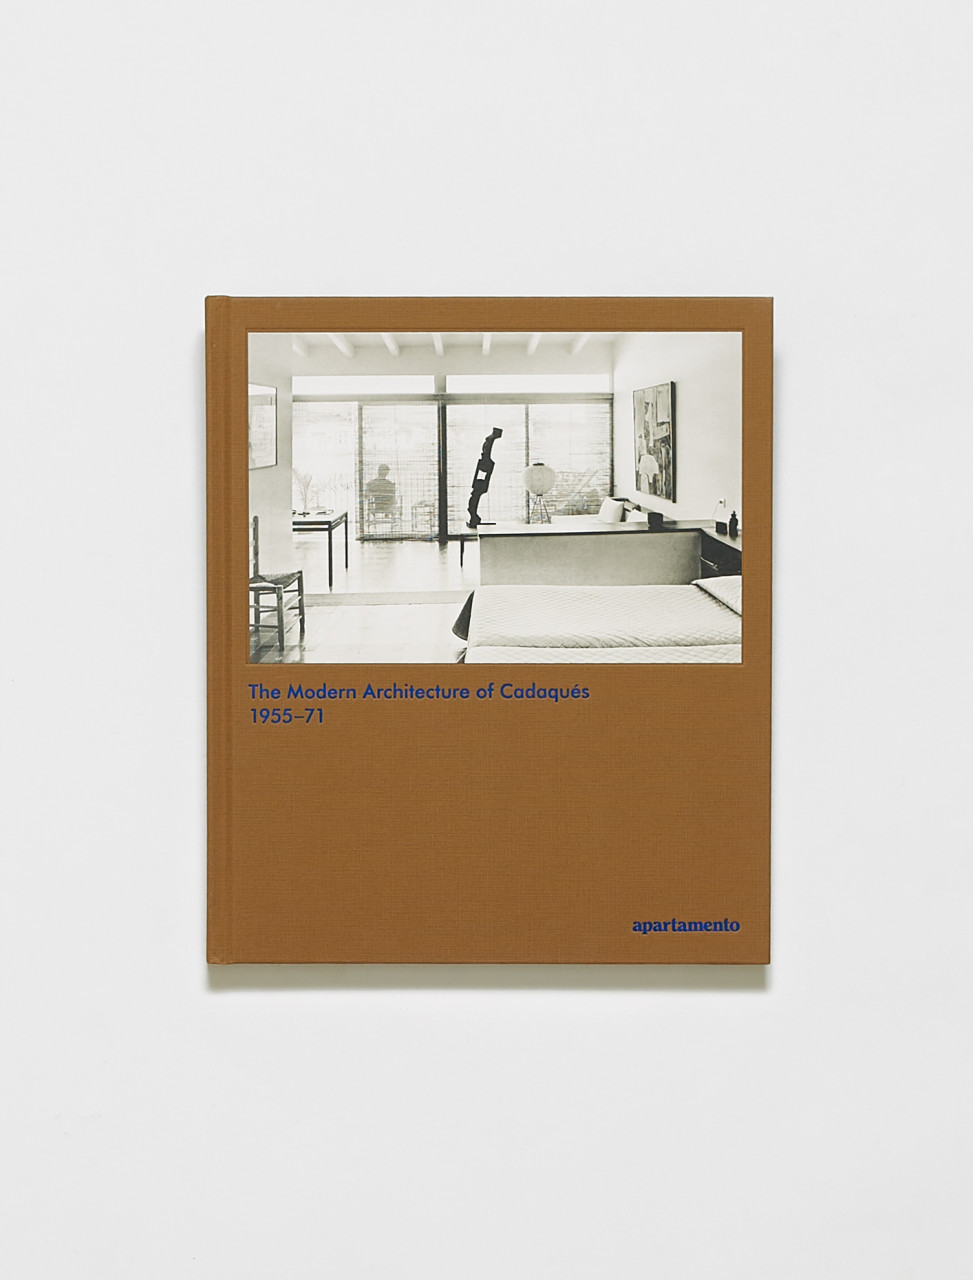 9788409256273 THE MODERN ARCHITECTURE OF CADAQUES